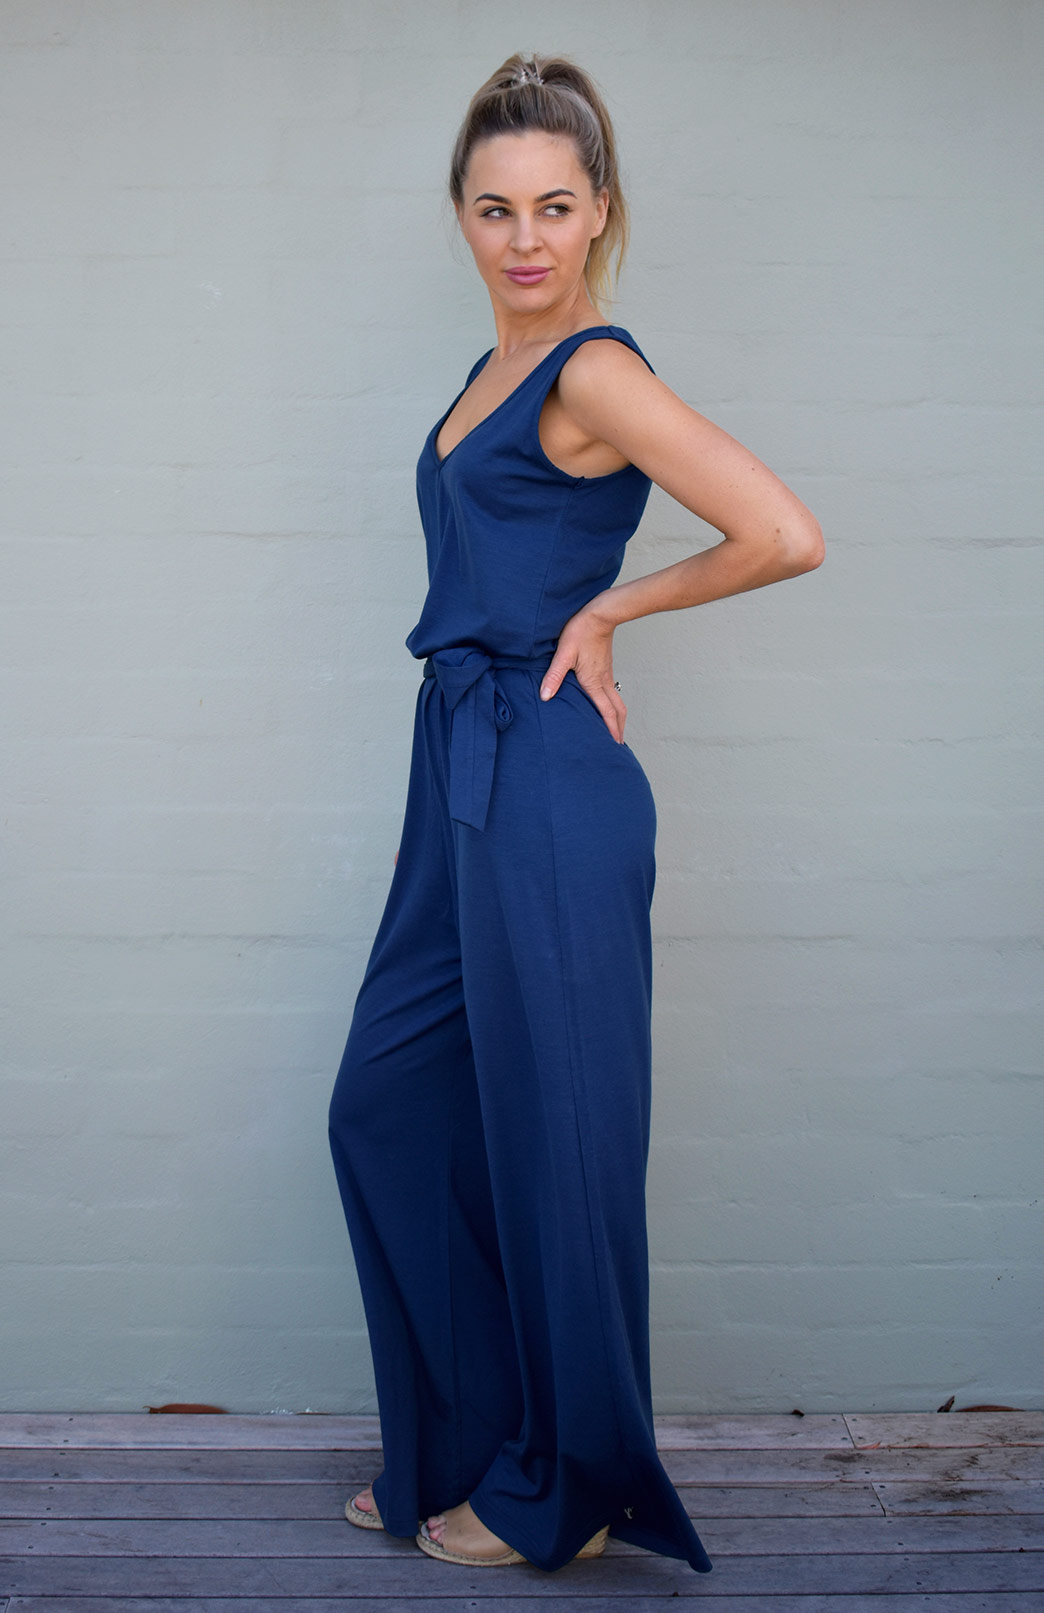 Victoria Jumpsuit - Women's Indigo Blue Merino Wool Jumpsuit with V-Neck Line, Wide Legs and Waist Tie - Smitten Merino Tasmania Australia